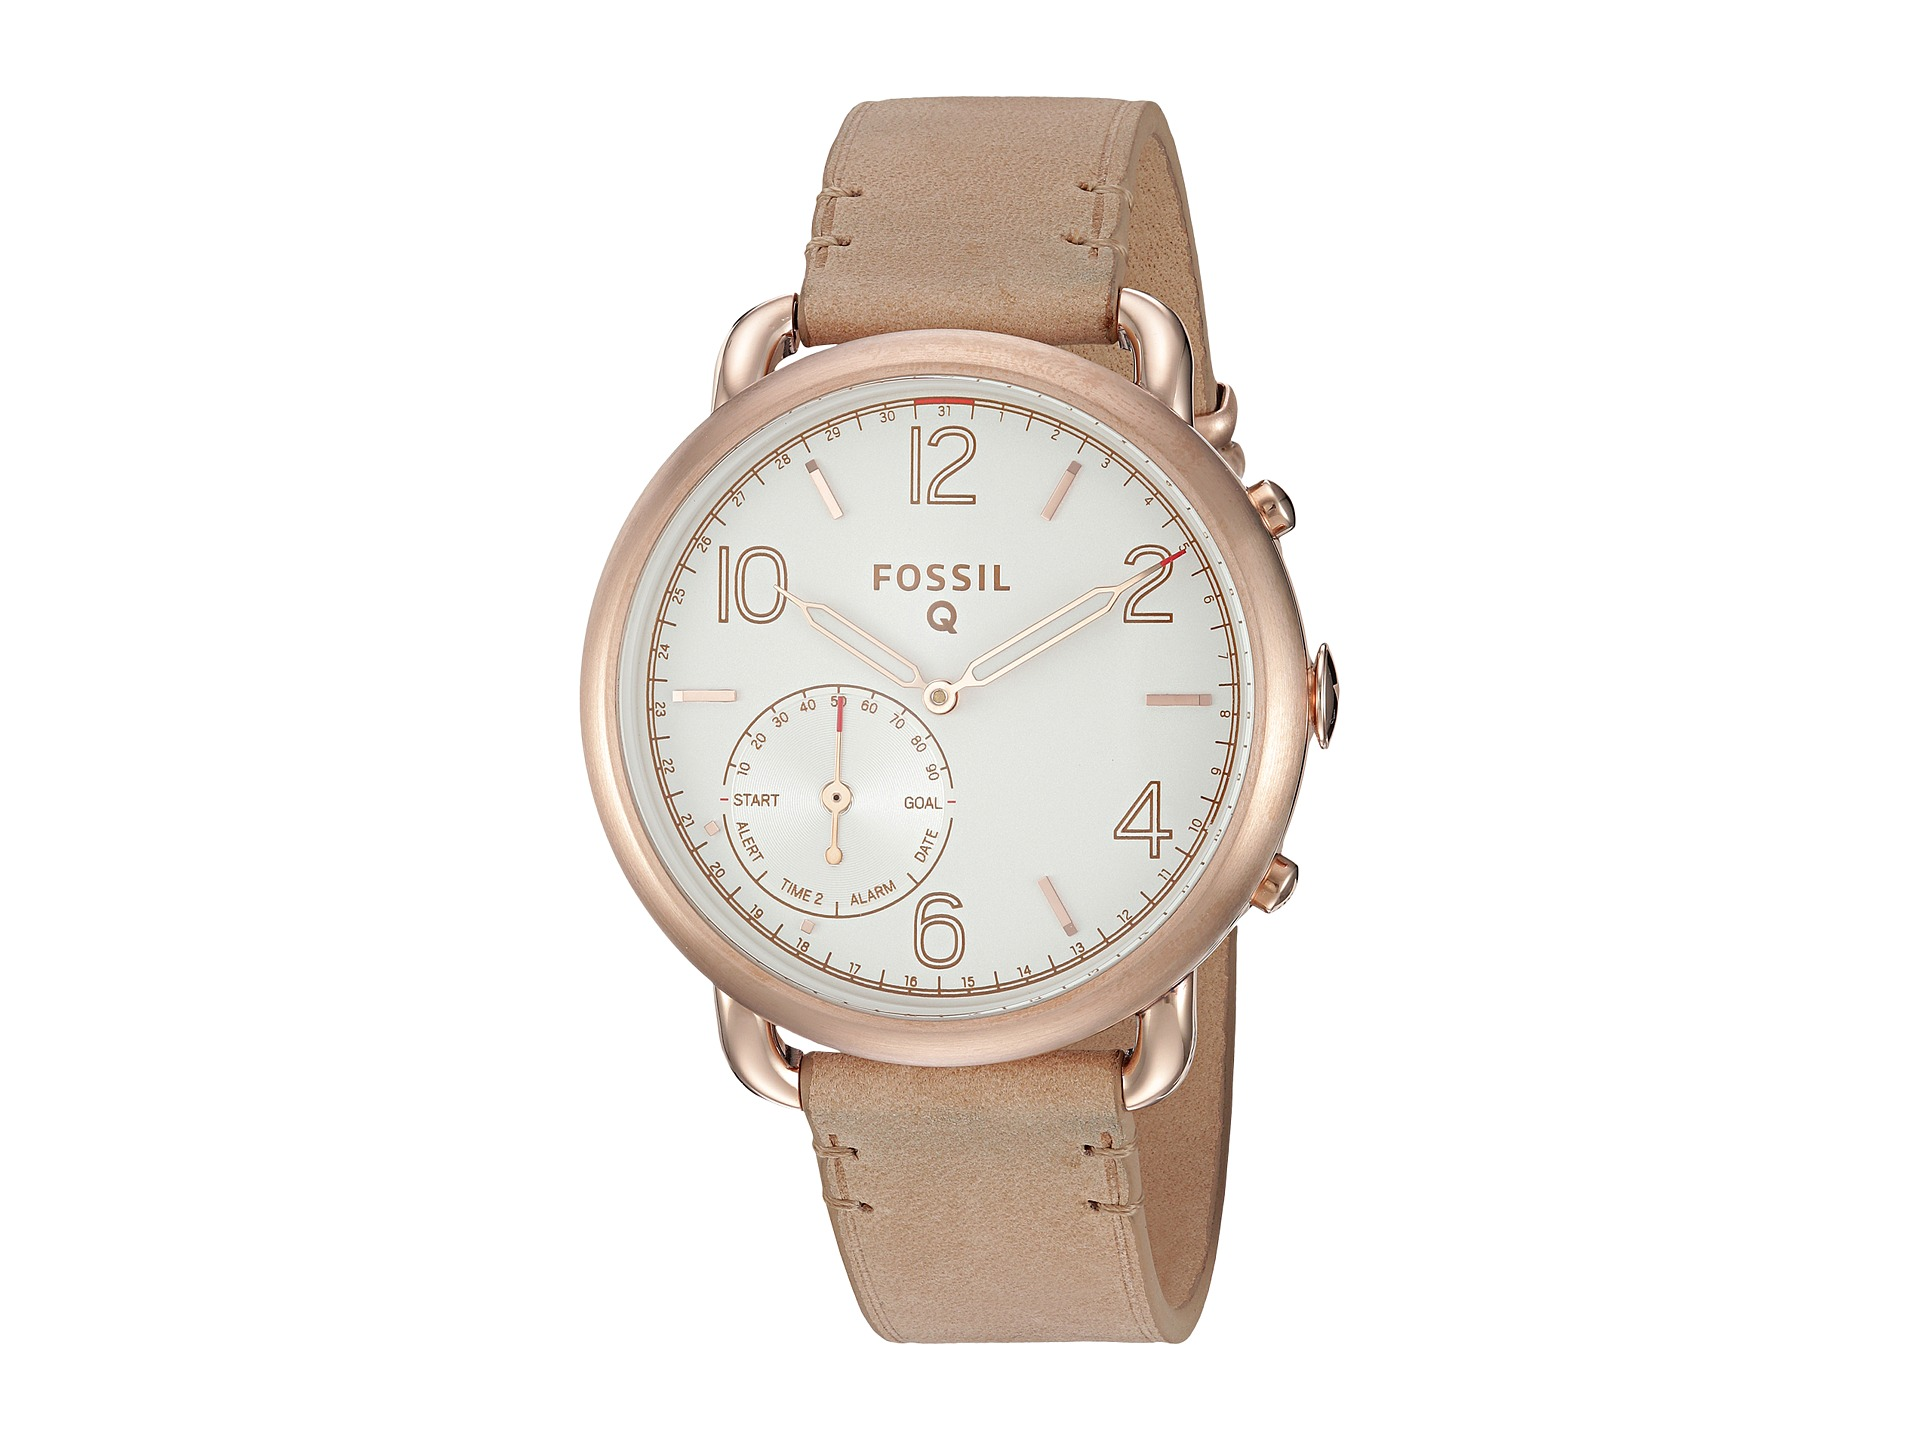 fossil q q tailor hybrid smartwatch ftw1129 rose gold sand leather free shipping. Black Bedroom Furniture Sets. Home Design Ideas